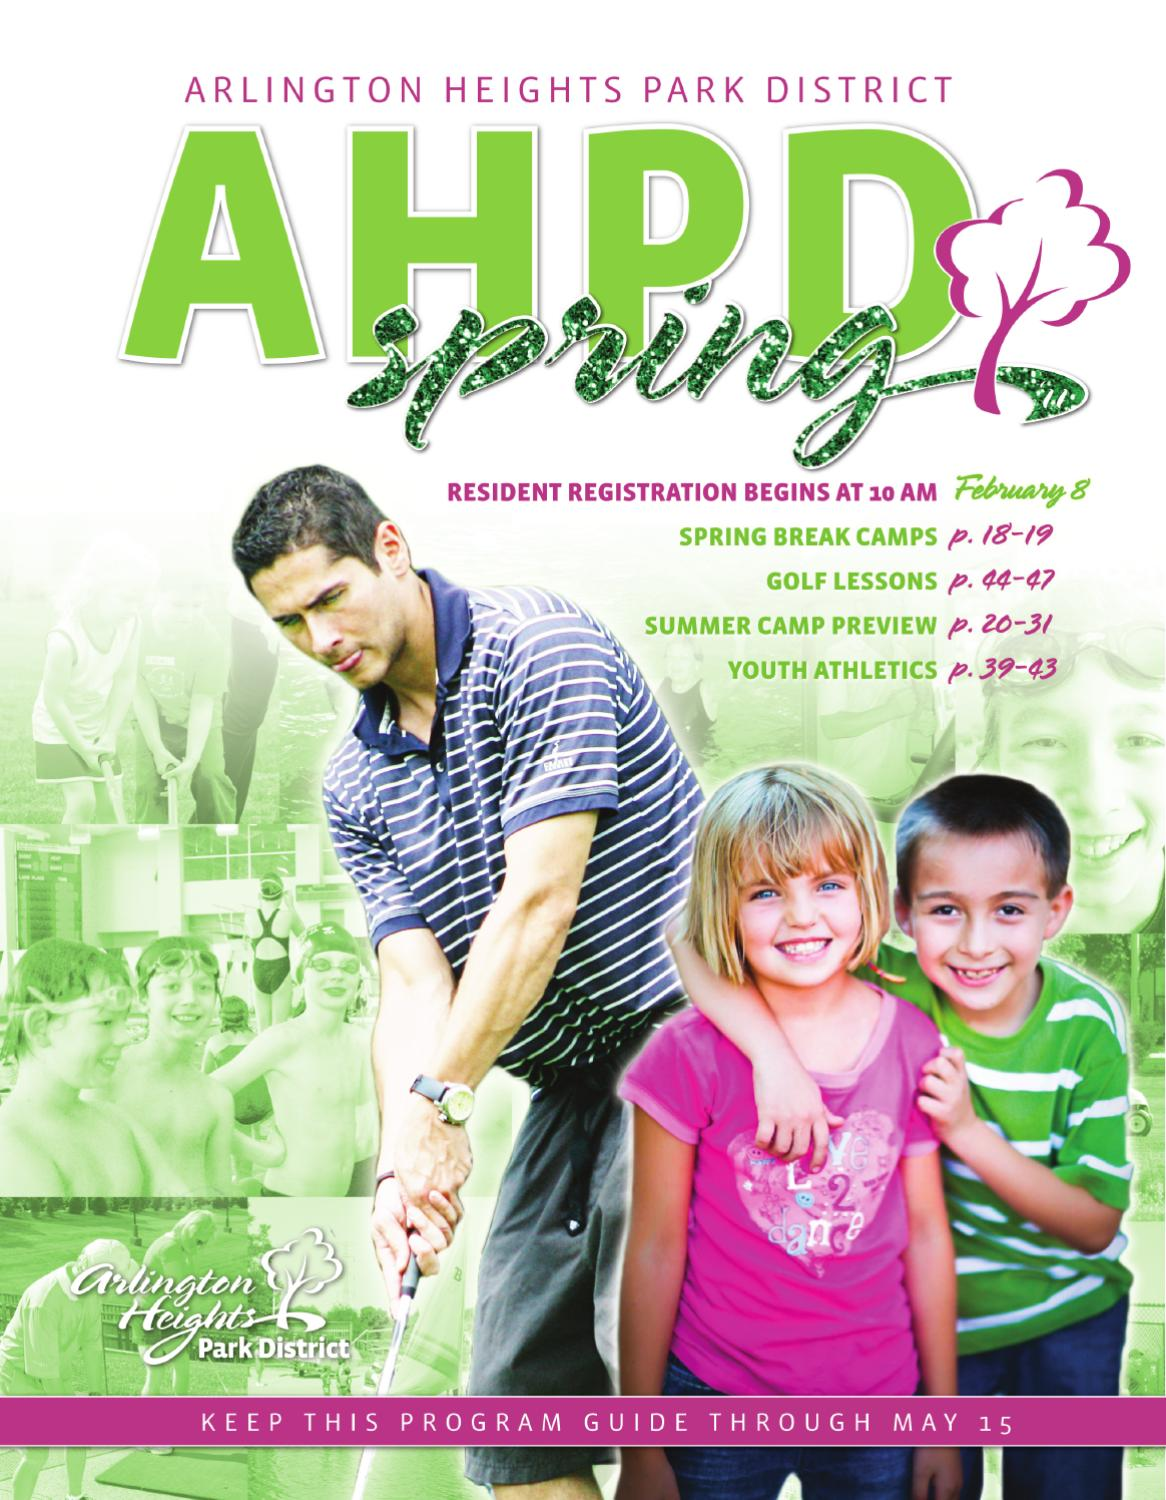 AHPD Spring 2011 Interactive Program Guide by Arlington Heights Park